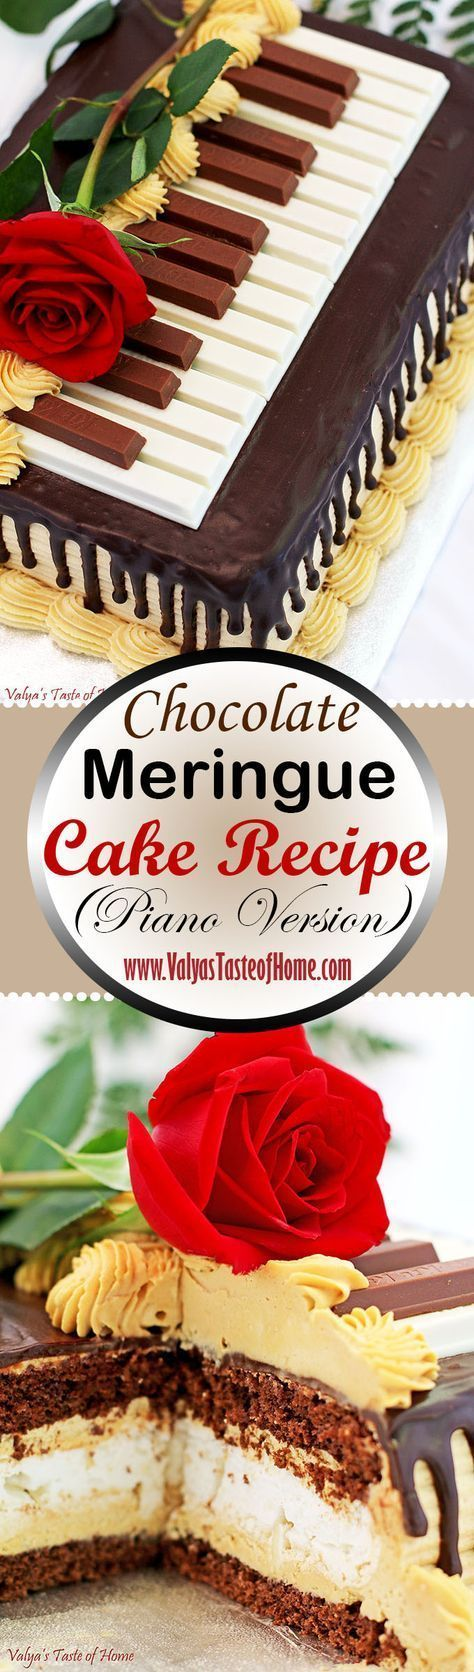 This Chocolate Meringue Cake Recipe (Piano Version) is absolutely incredible! Cr... - Yummy cakes -